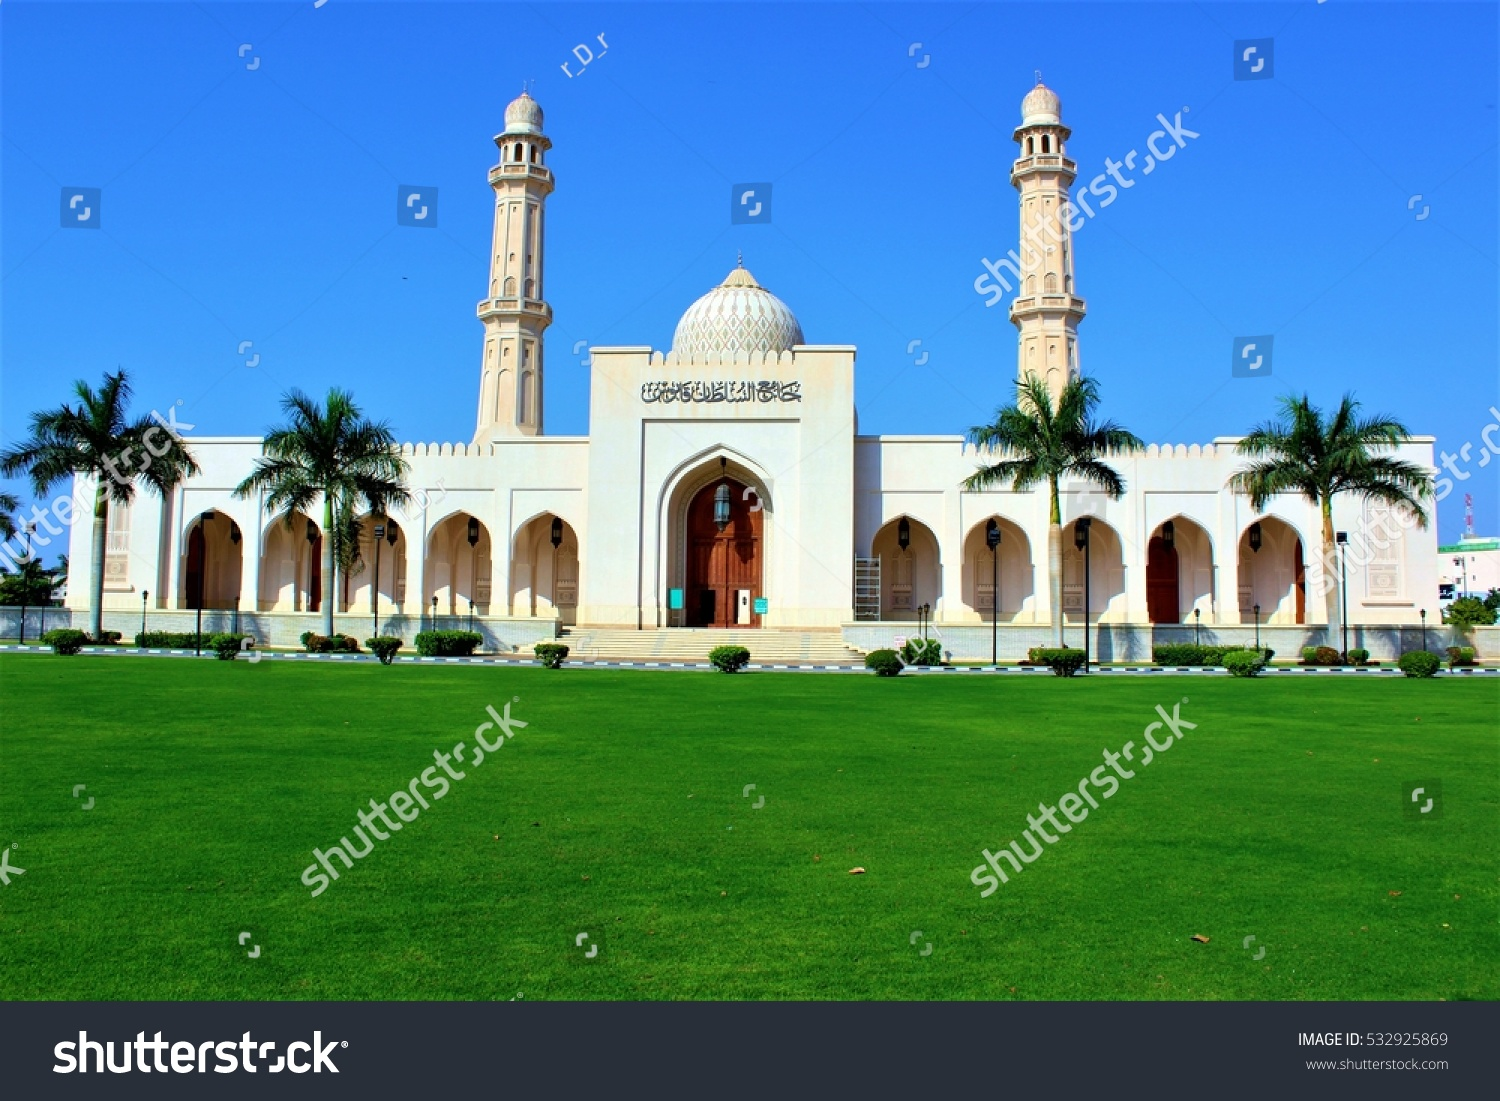 stock-photo-sultan-qaboos-grand-mosque-s